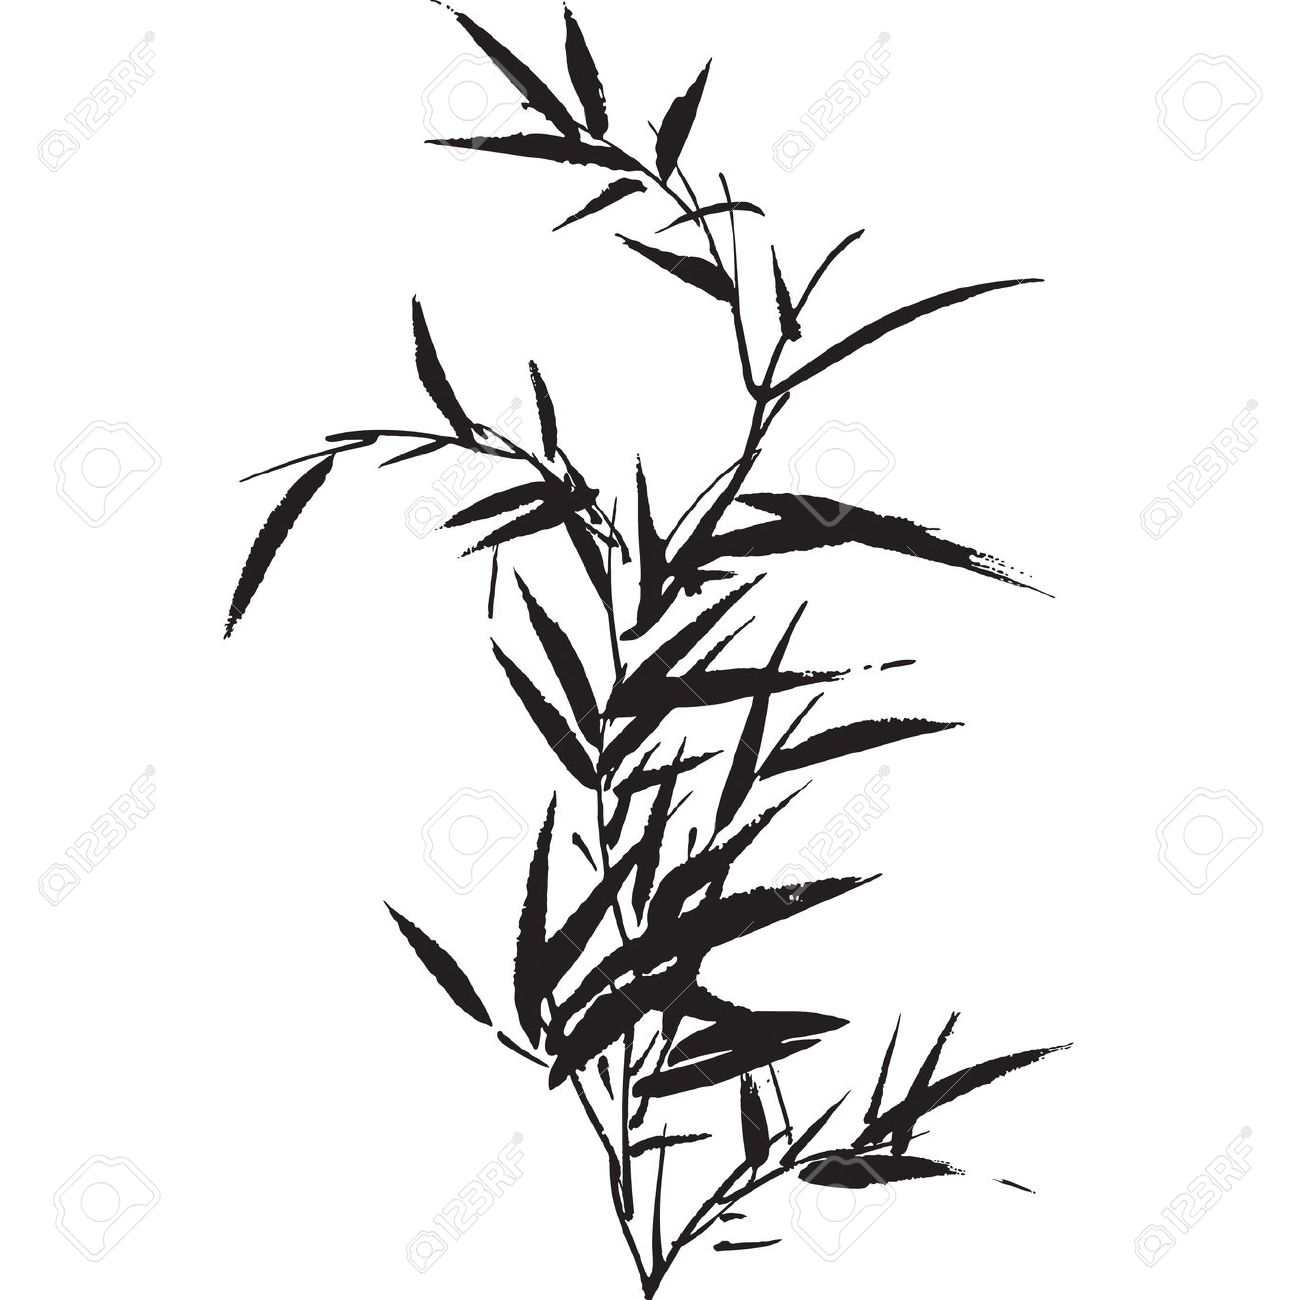 1300x1300 Drawn Bamboo Bamboo Leaf Free Collection Download And Share